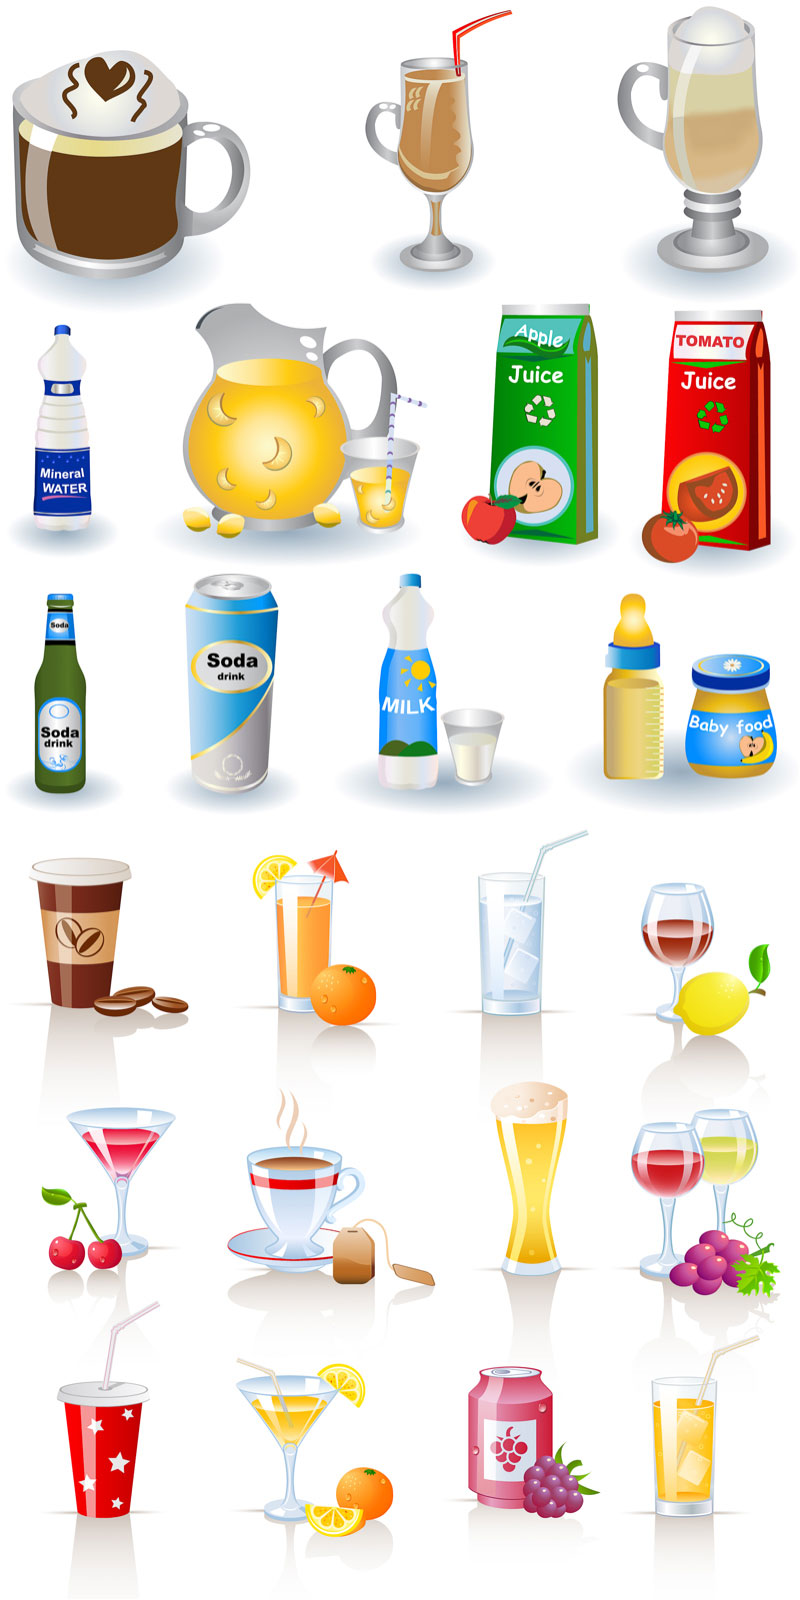 Soft drinks and milk clipart clip royalty free download Free Drinks Cliparts, Download Free Clip Art, Free Clip Art ... clip royalty free download